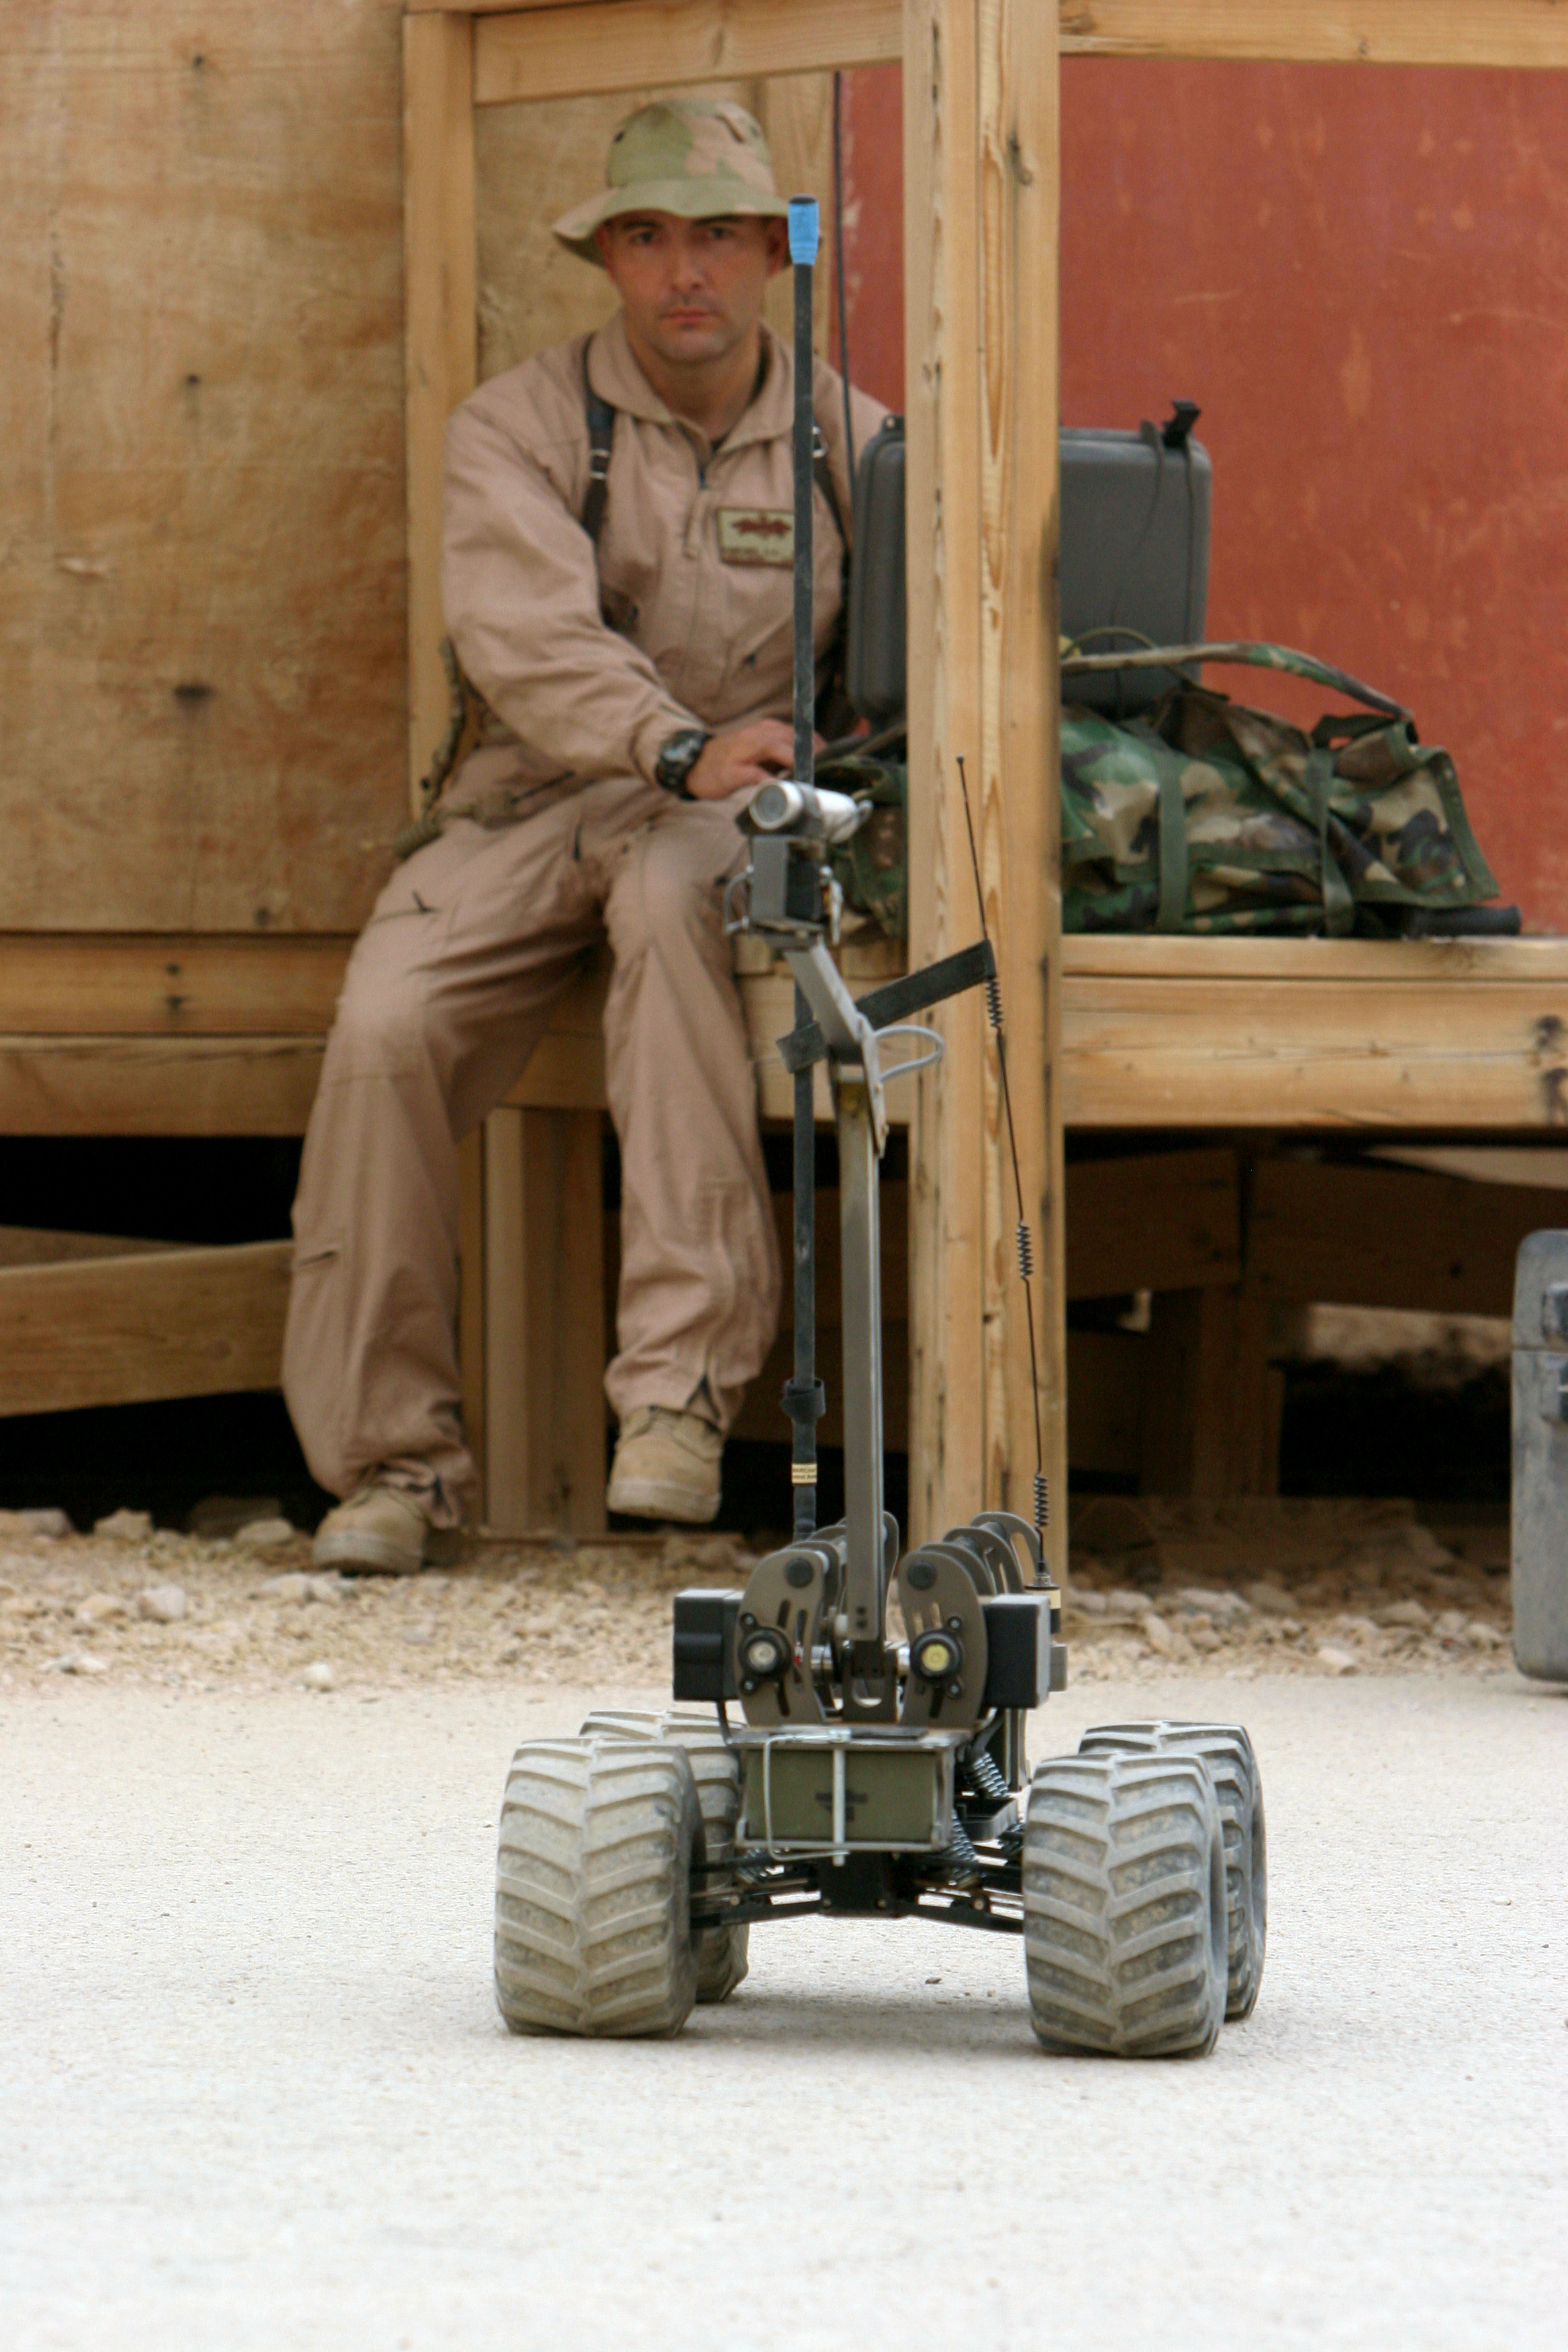 "080326-N-9623R-007 Iraq (March 26, 2008) Construction Electrician 2nd Class Greg Martinez, assigned to the convoy security element (CSE ) of Naval Mobile Construction Battalion (NMCB) 17, controls the MARCBOT IV, a remote controlled vehicle mounted with a video camera which is used to investigate suspicious areas without putting team members at risk. NMCB -17 CSE teams are highly trained Seabees tasked with the safe movement of various convoys to and from their missions. NMCB-17, also known as the ""Desert Battalion"", is to Iraq and other areas of operations supporting Operation Iraqi Freedom and Enduring Freedom. U.S. Navy photo by Mass Communication Specialist 2nd Class Kenneth W. Robinson (Released)"